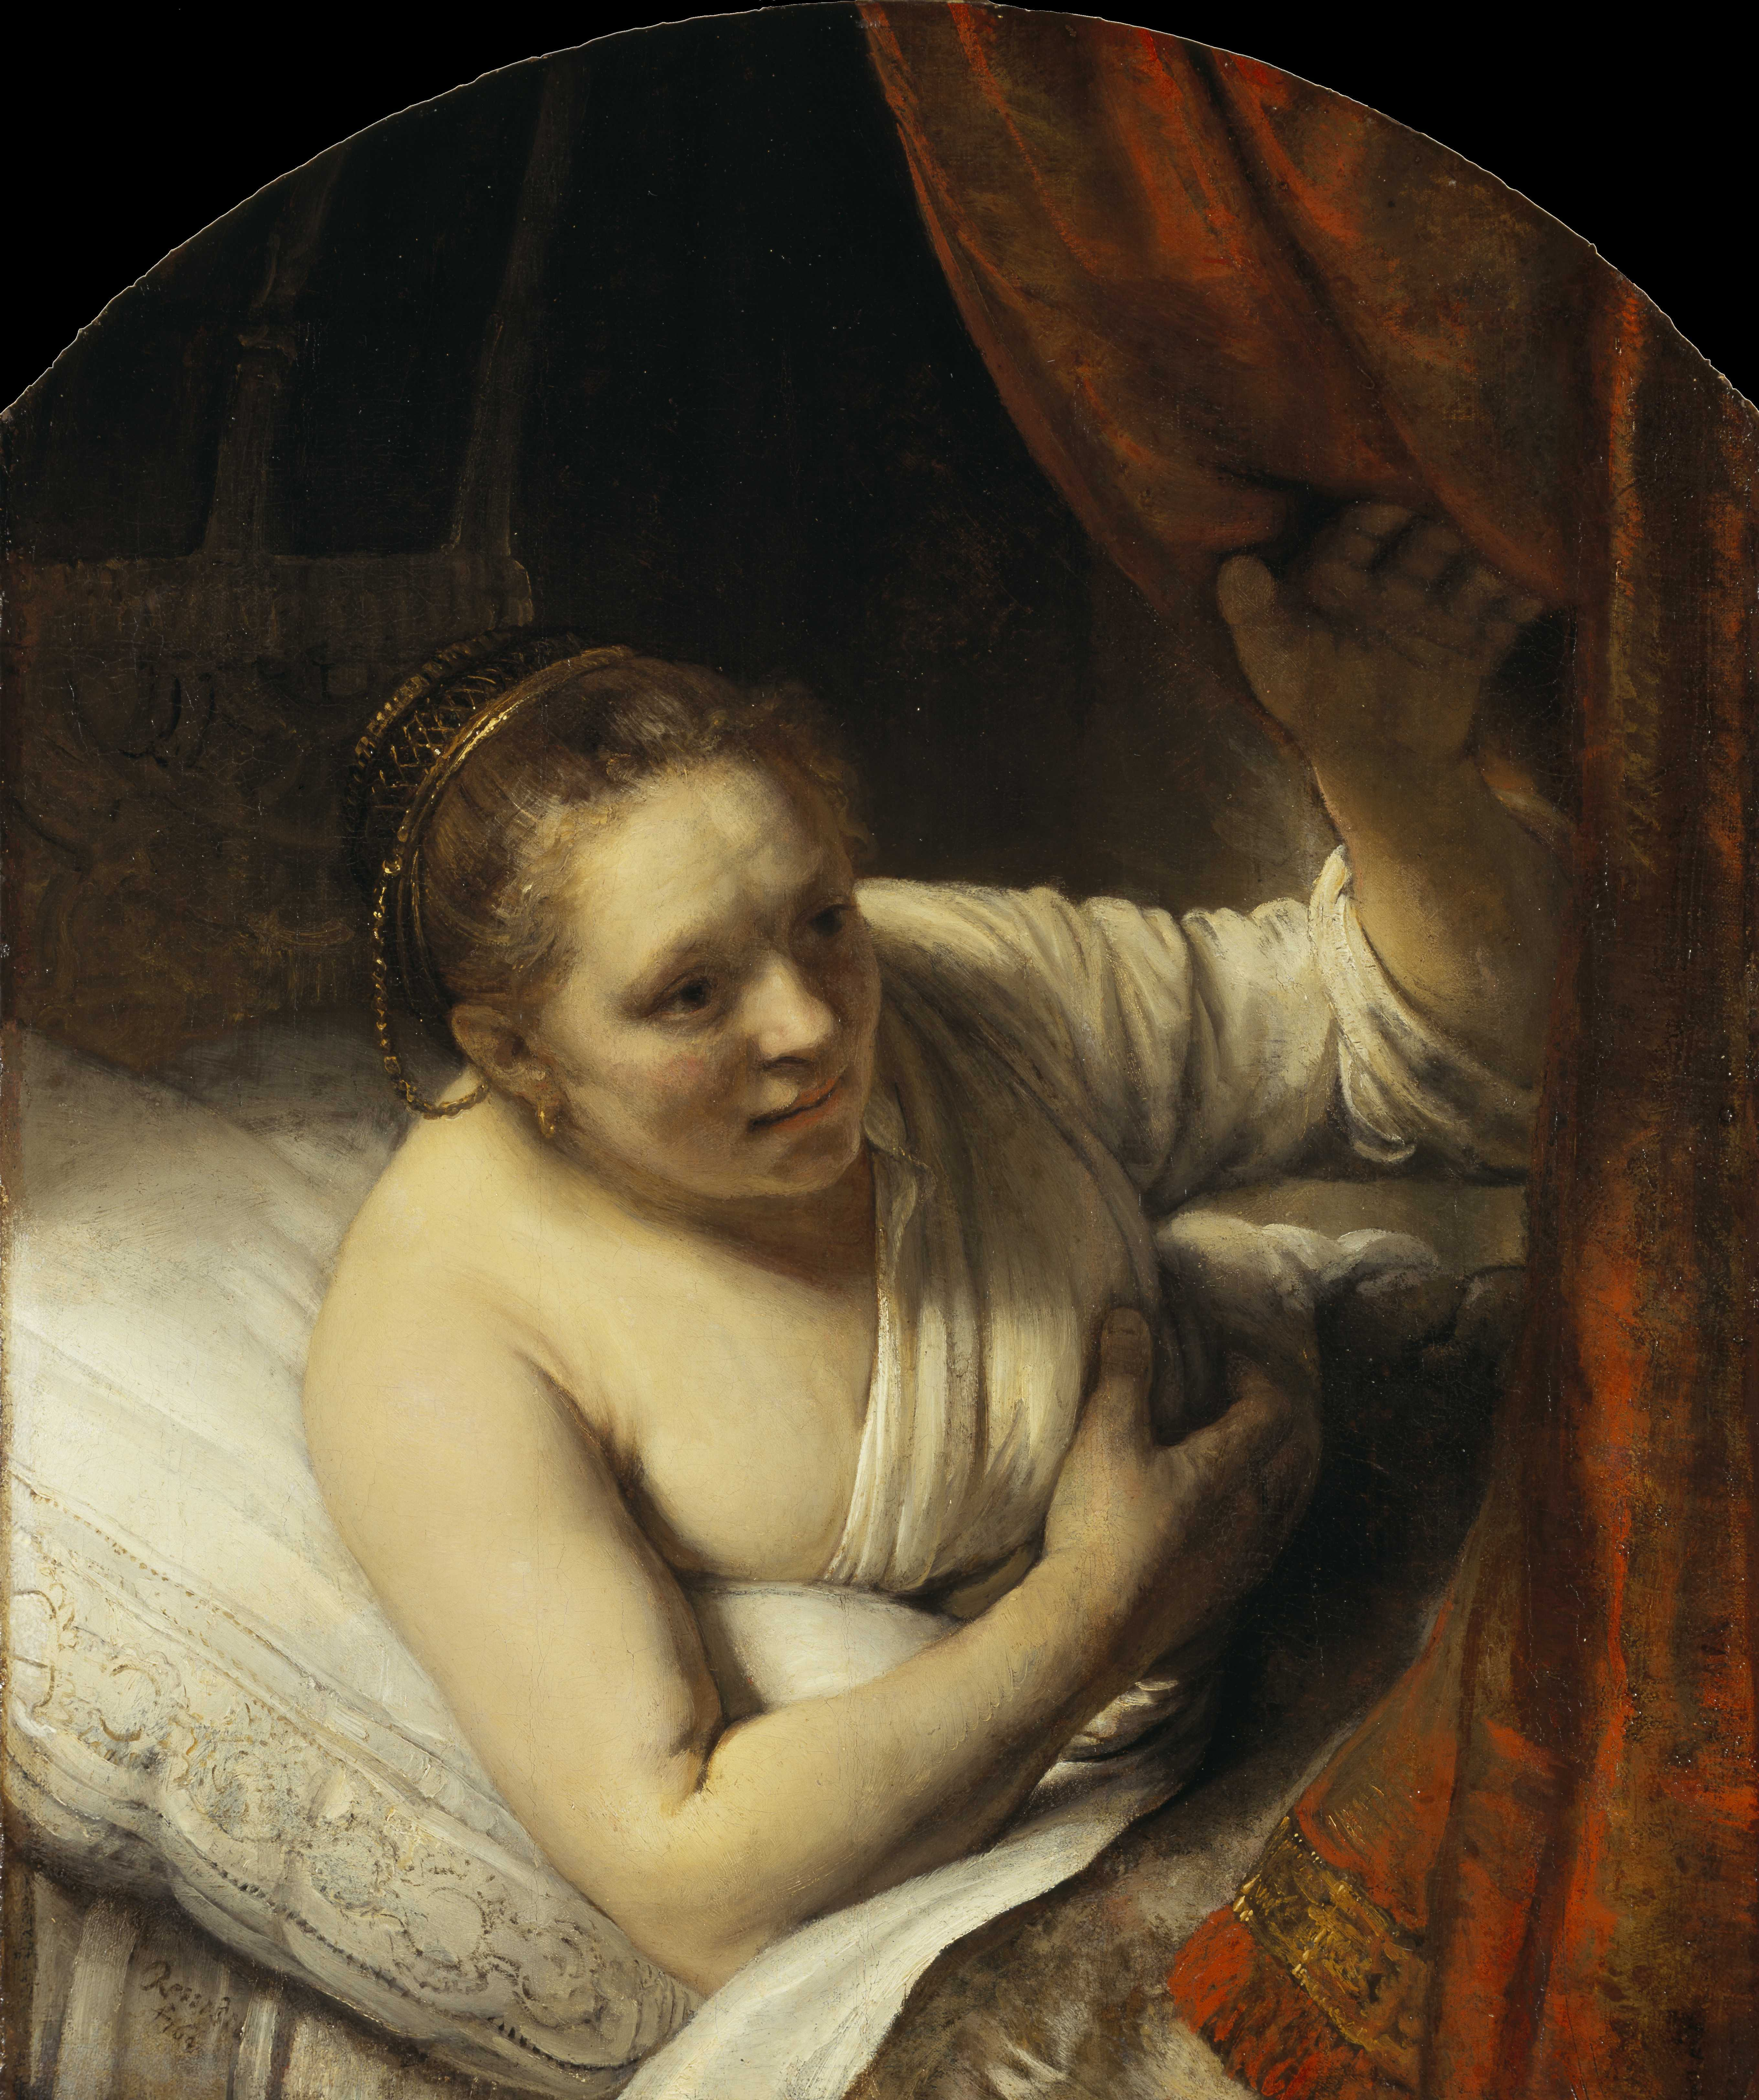 Rembrandt's Light, Exhibition, Dulwich Picture Gallery, London: 4